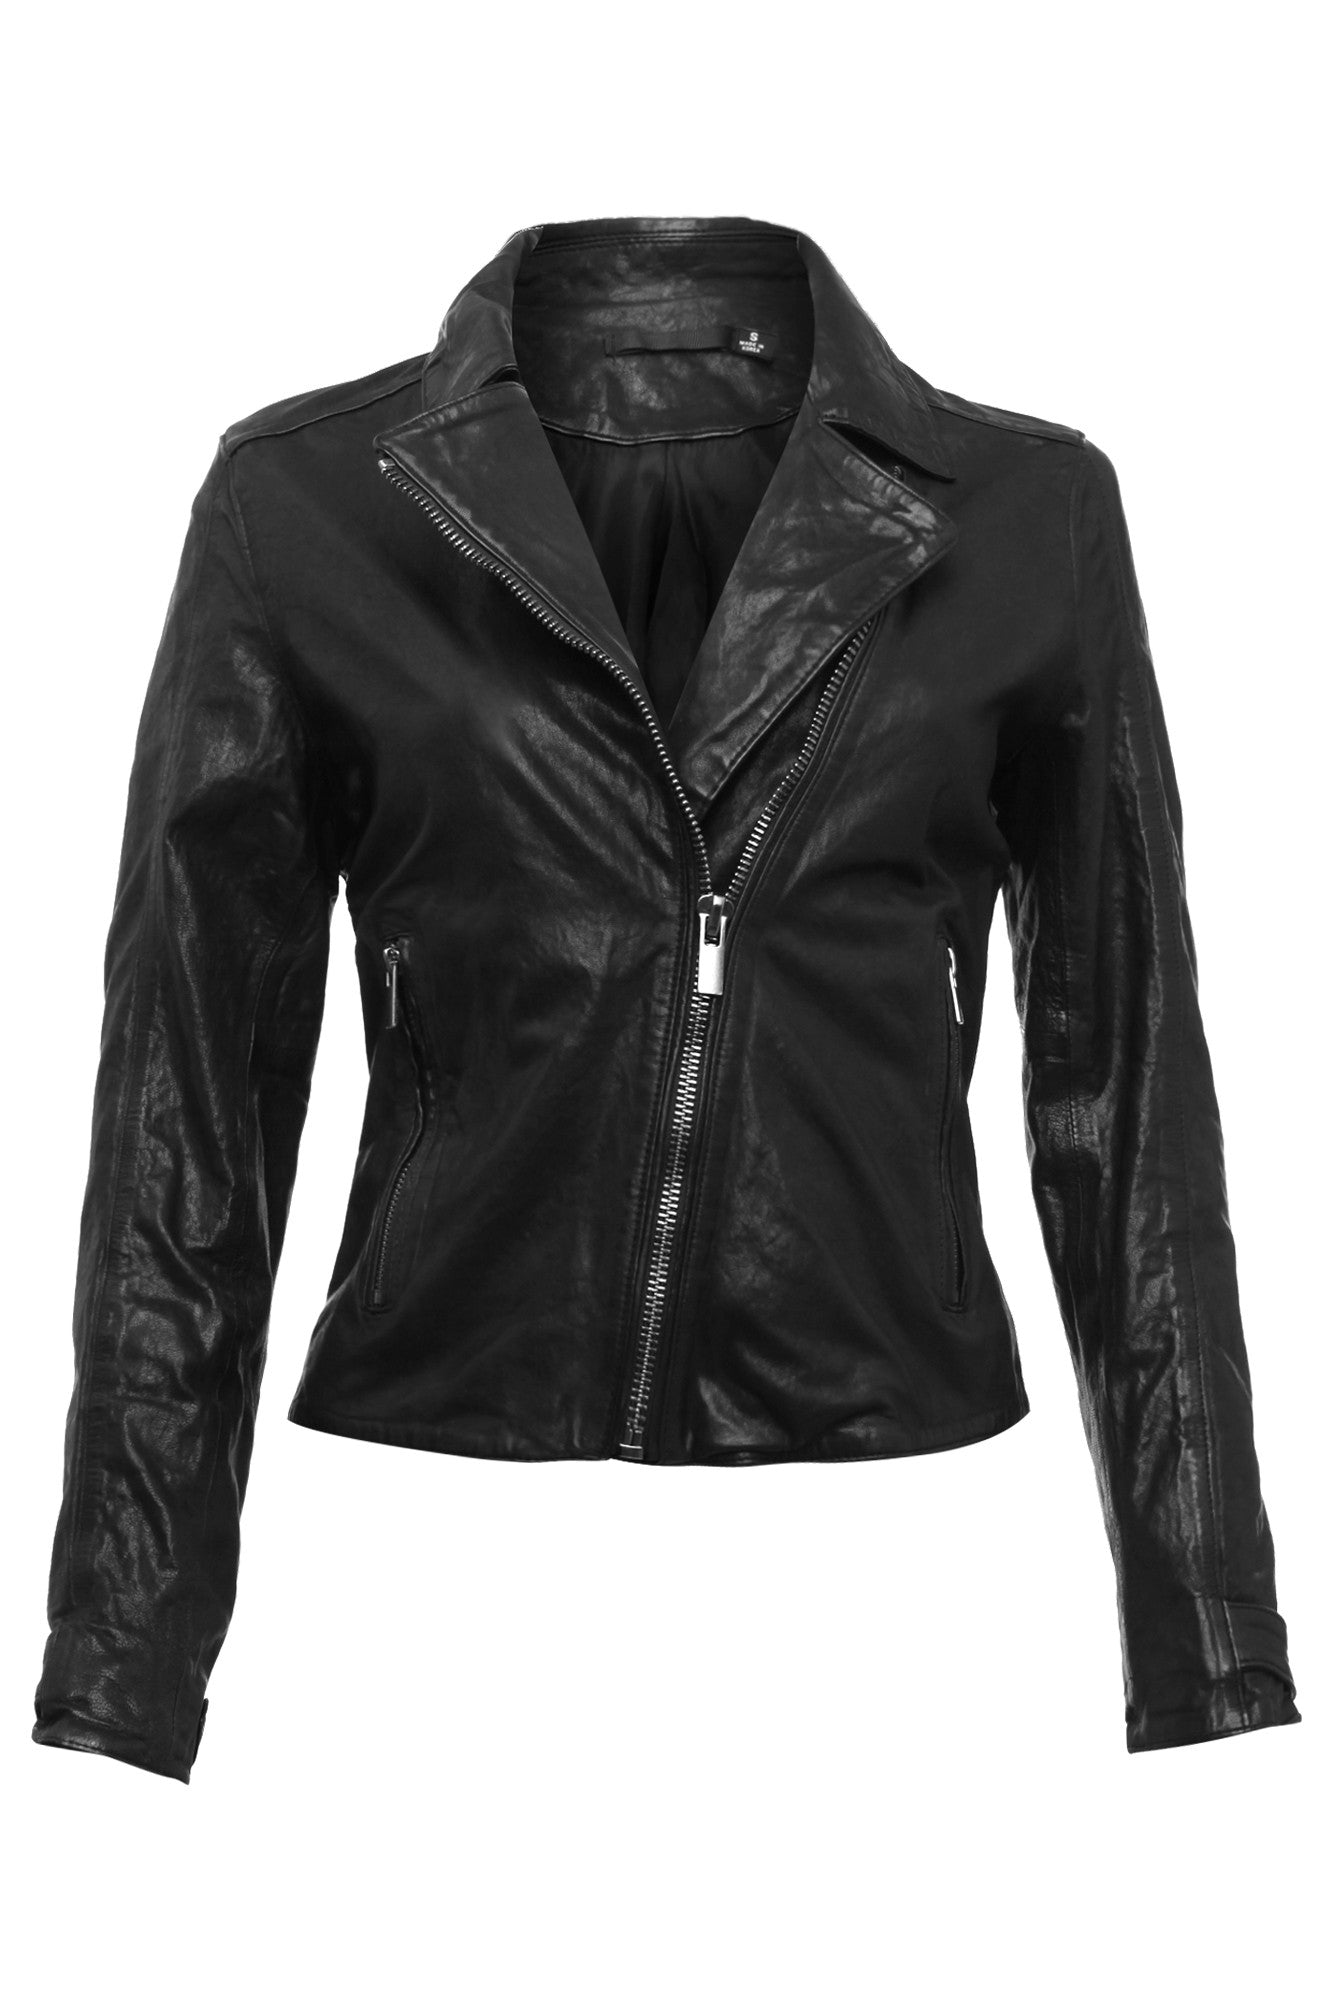 Womens Leather Jacket 24 Black